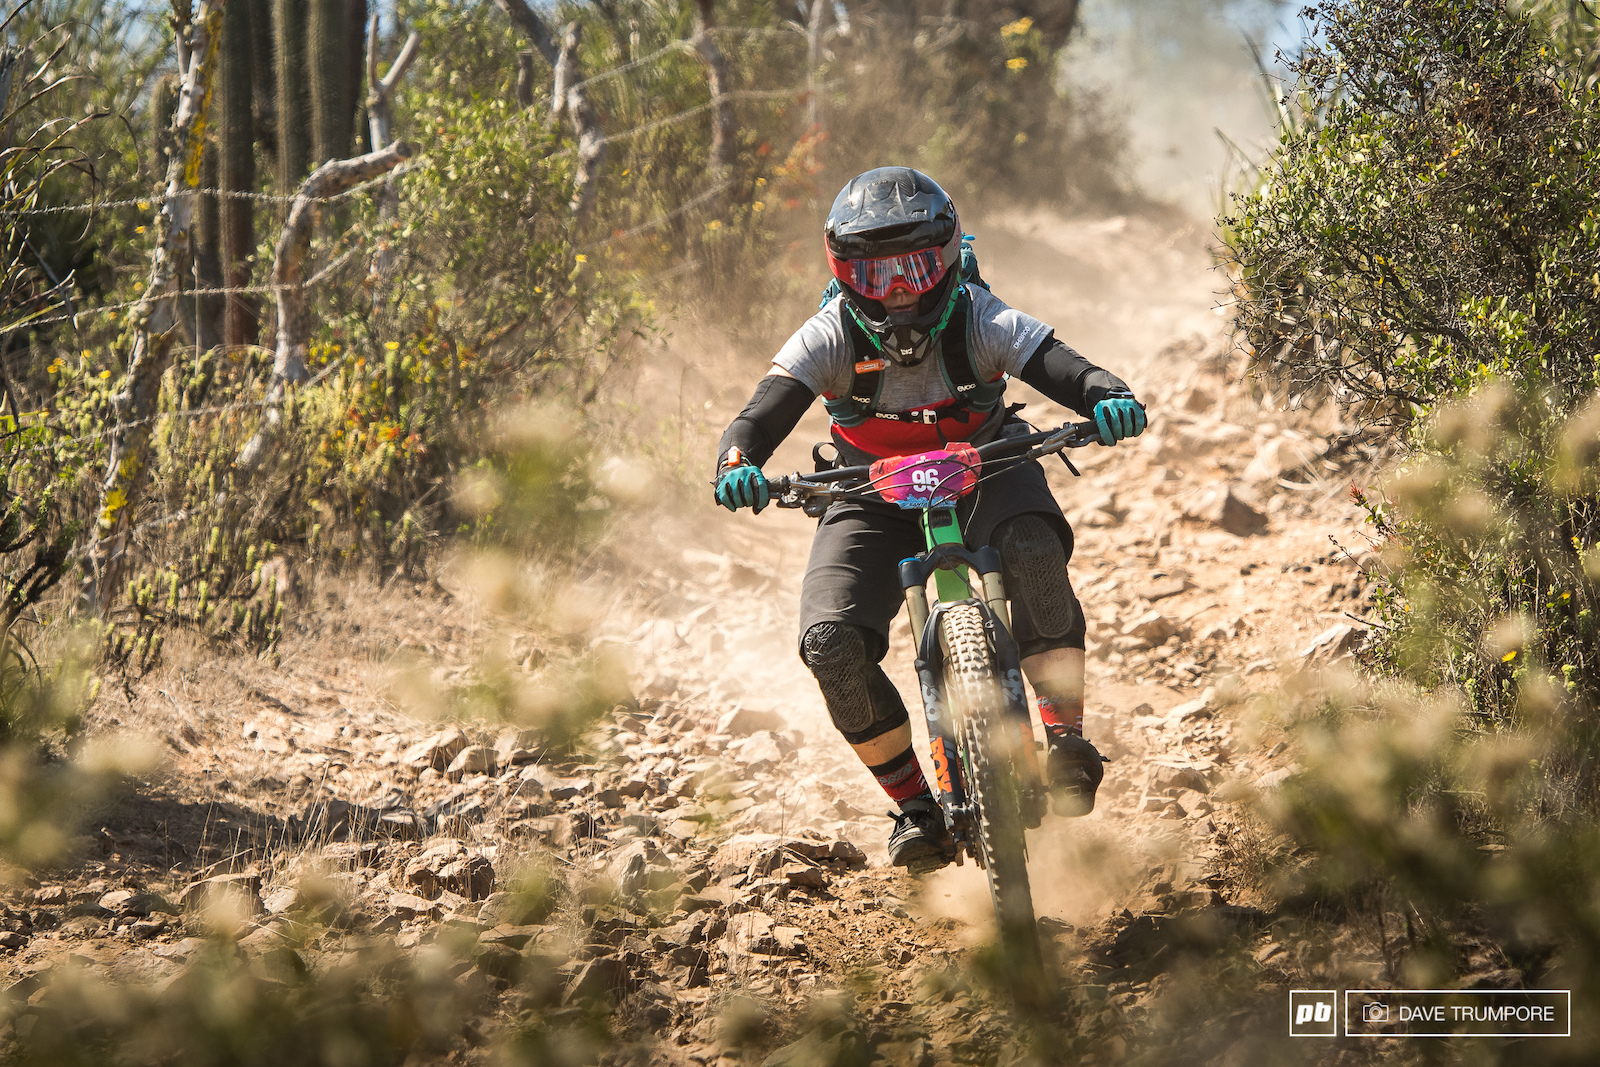 Jamie Hill was in the running for 2nd until having mechanical issues eventually settling for 3rd in the women s race.